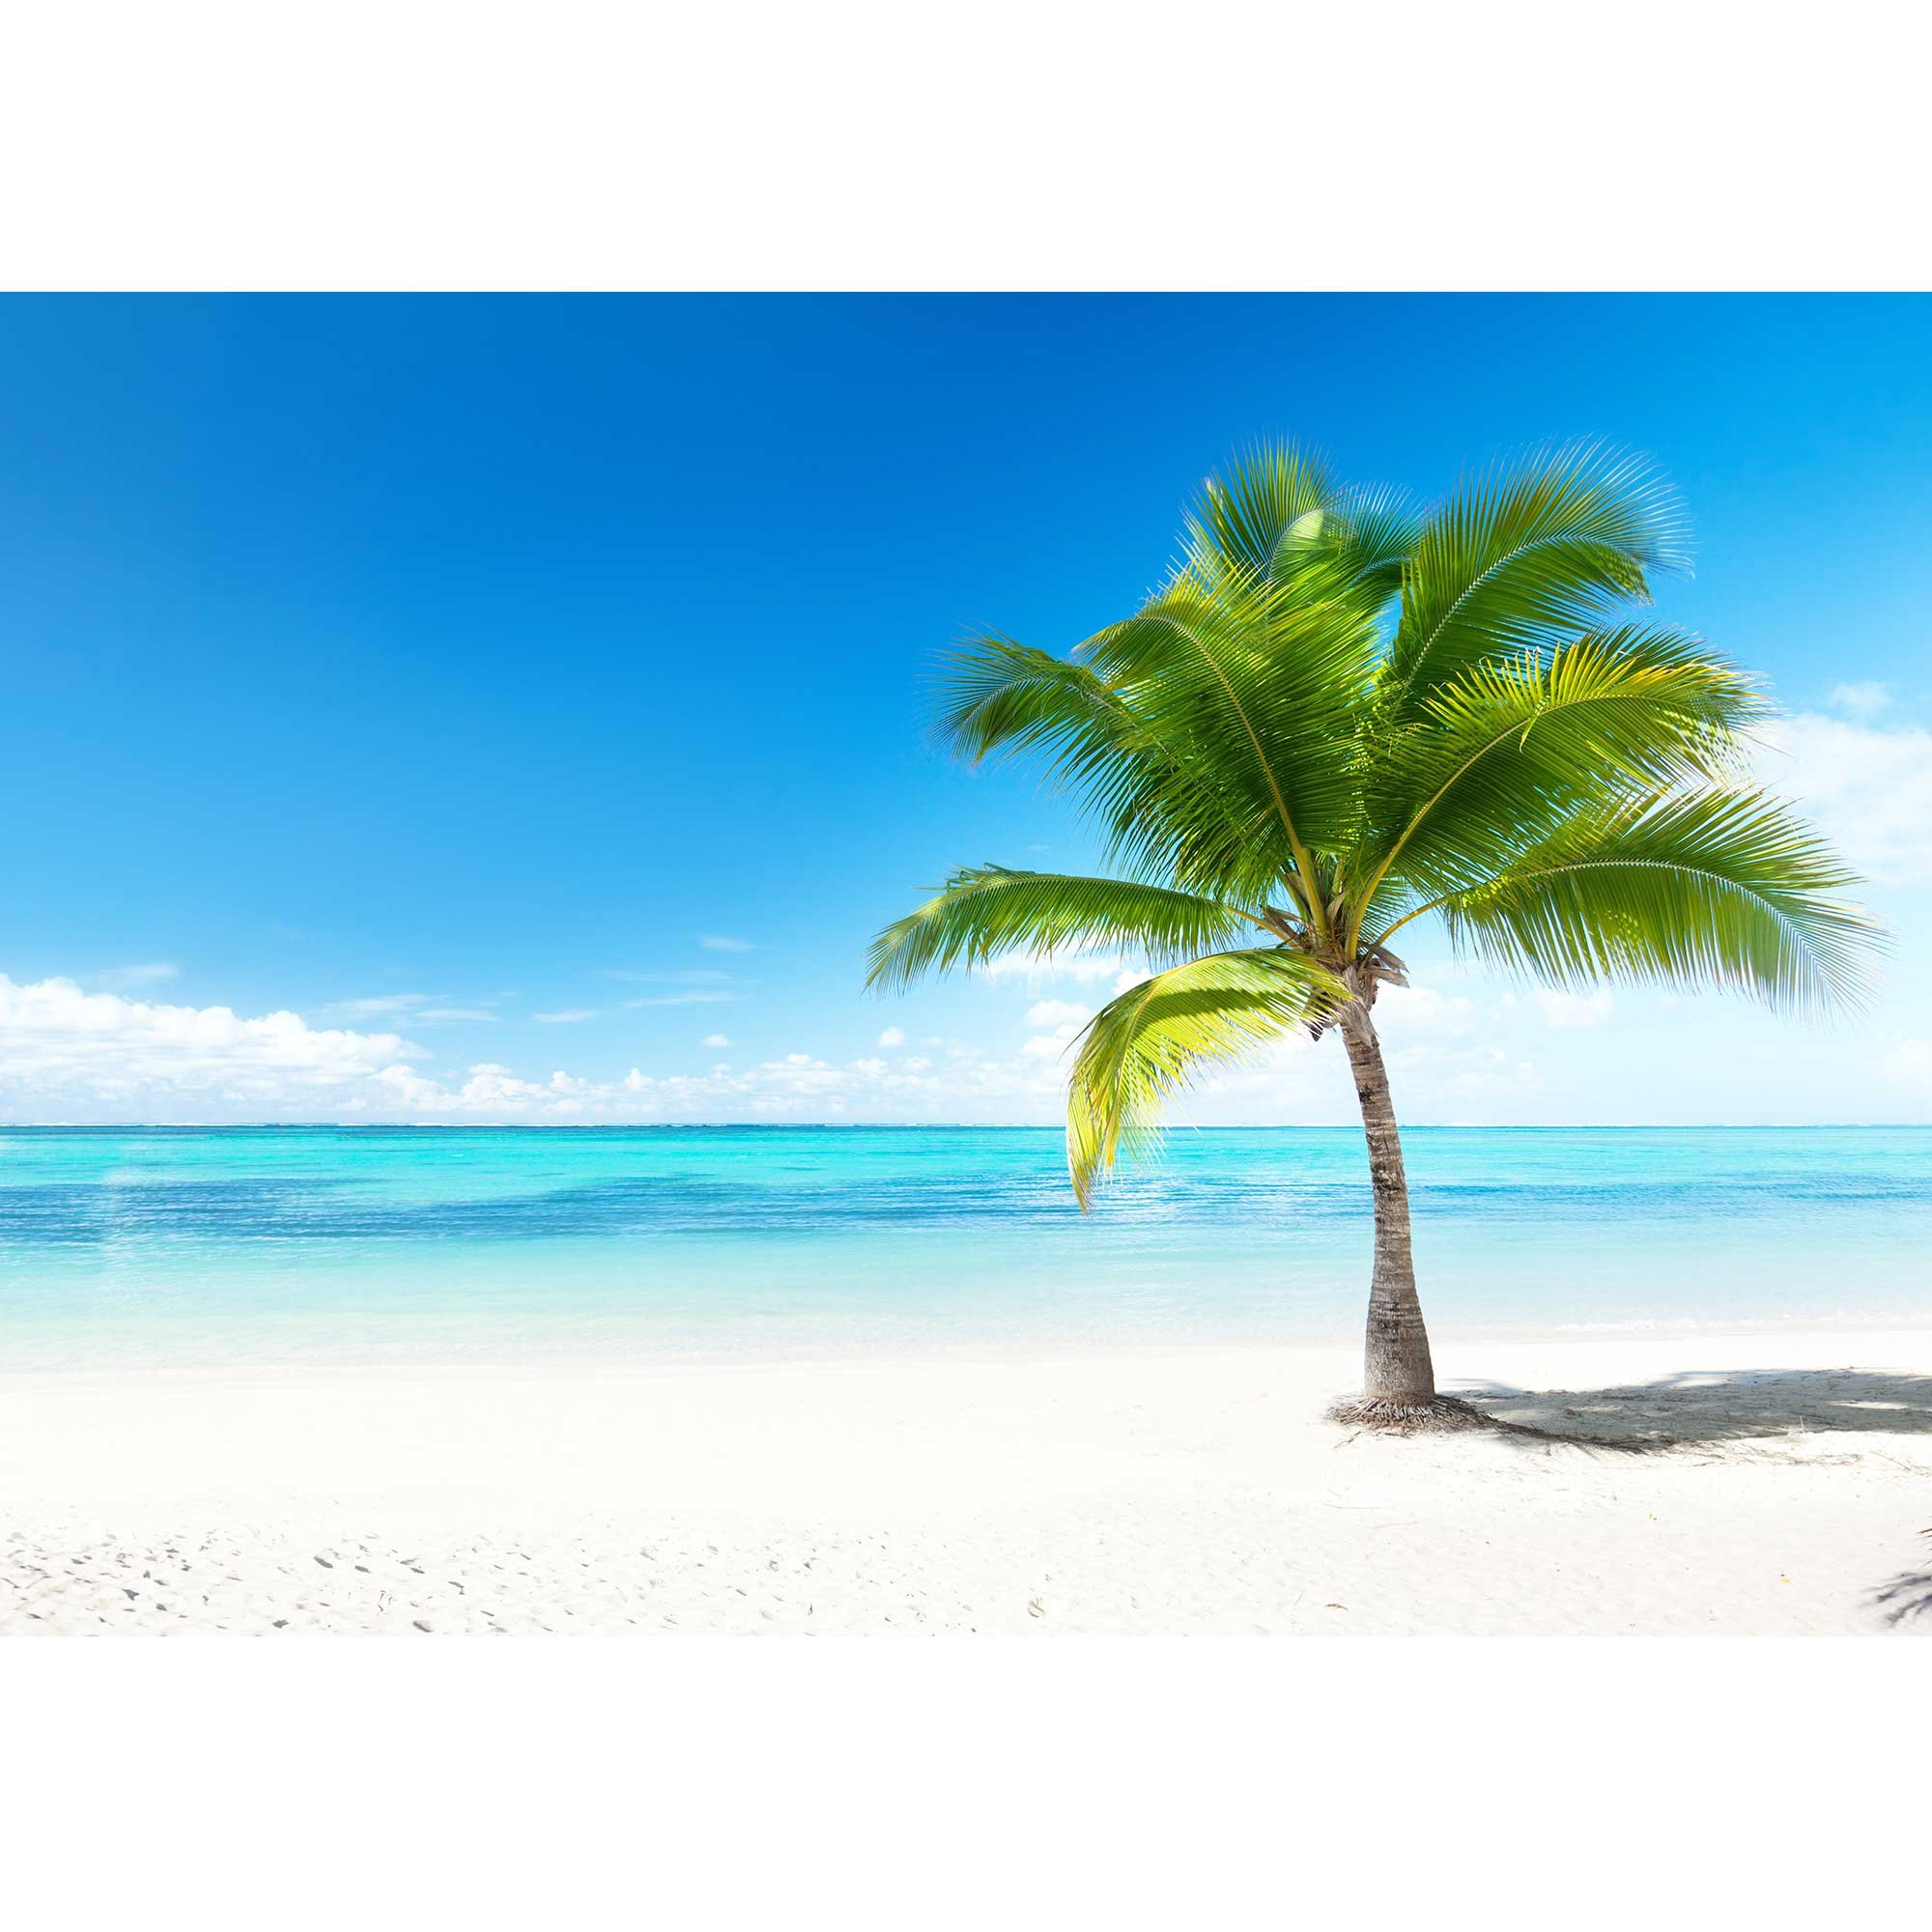 wall26 - Palm and Beach - Removable Wall Mural | Self-Adhesive Large Wallpaper - 100x144 inches by wall26 (Image #2)